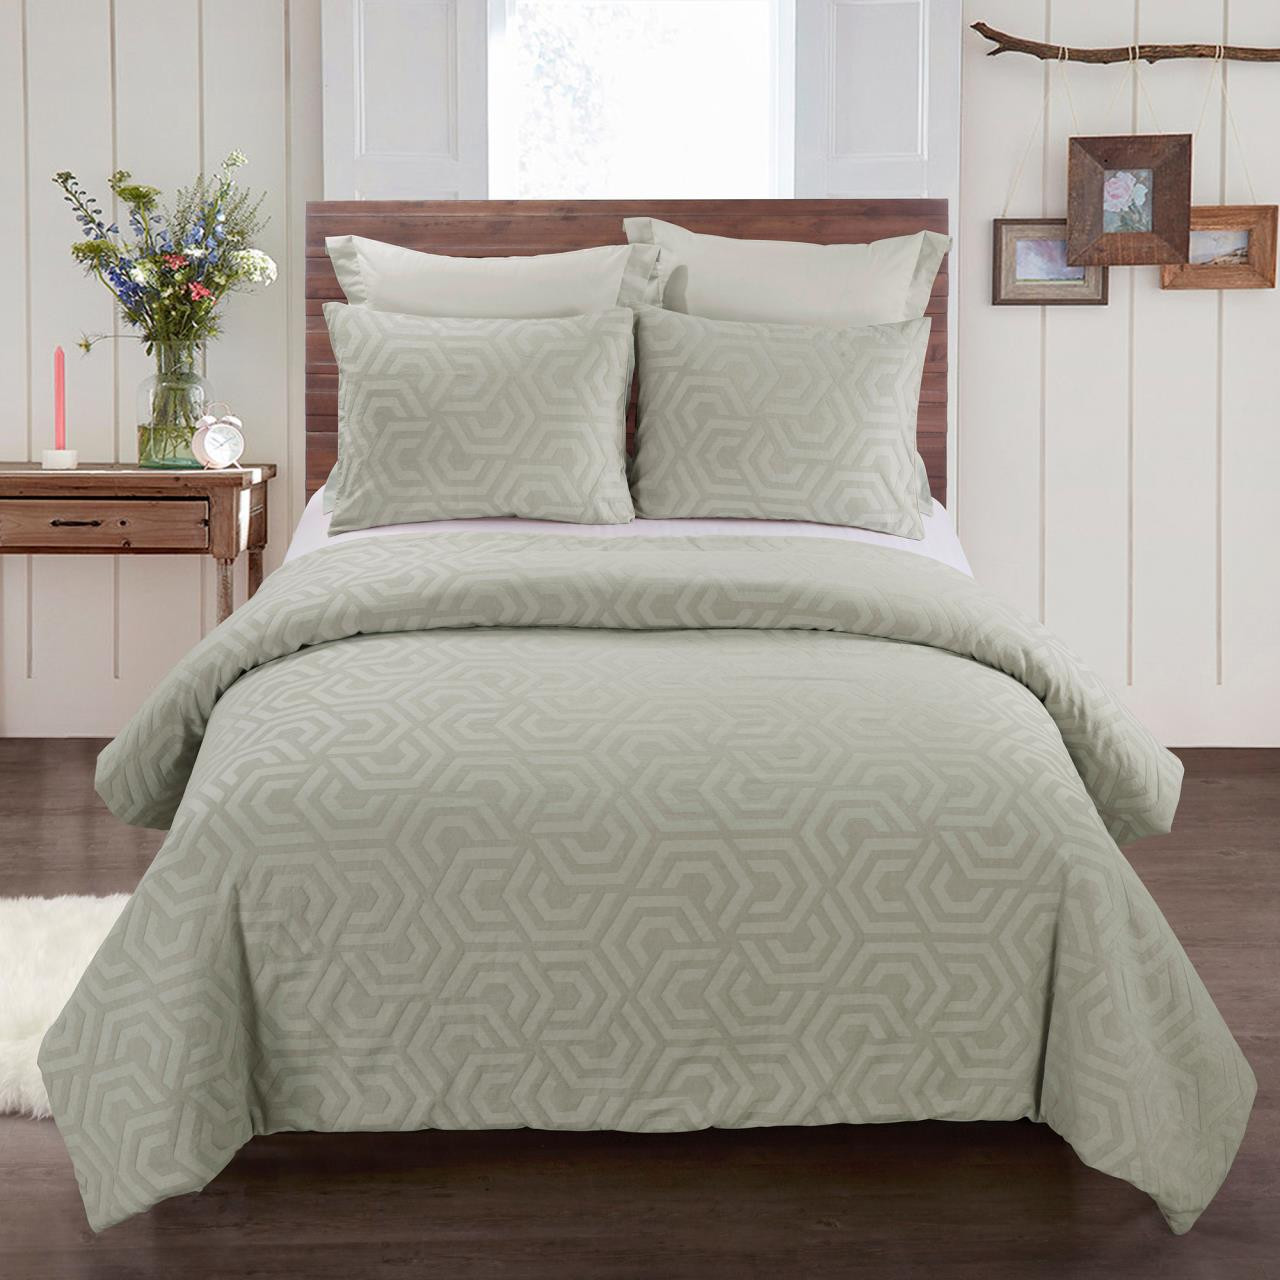 Seville Sage Comforter Set By Your Lifestyle By Donna Sharp Paul S Home Fashions